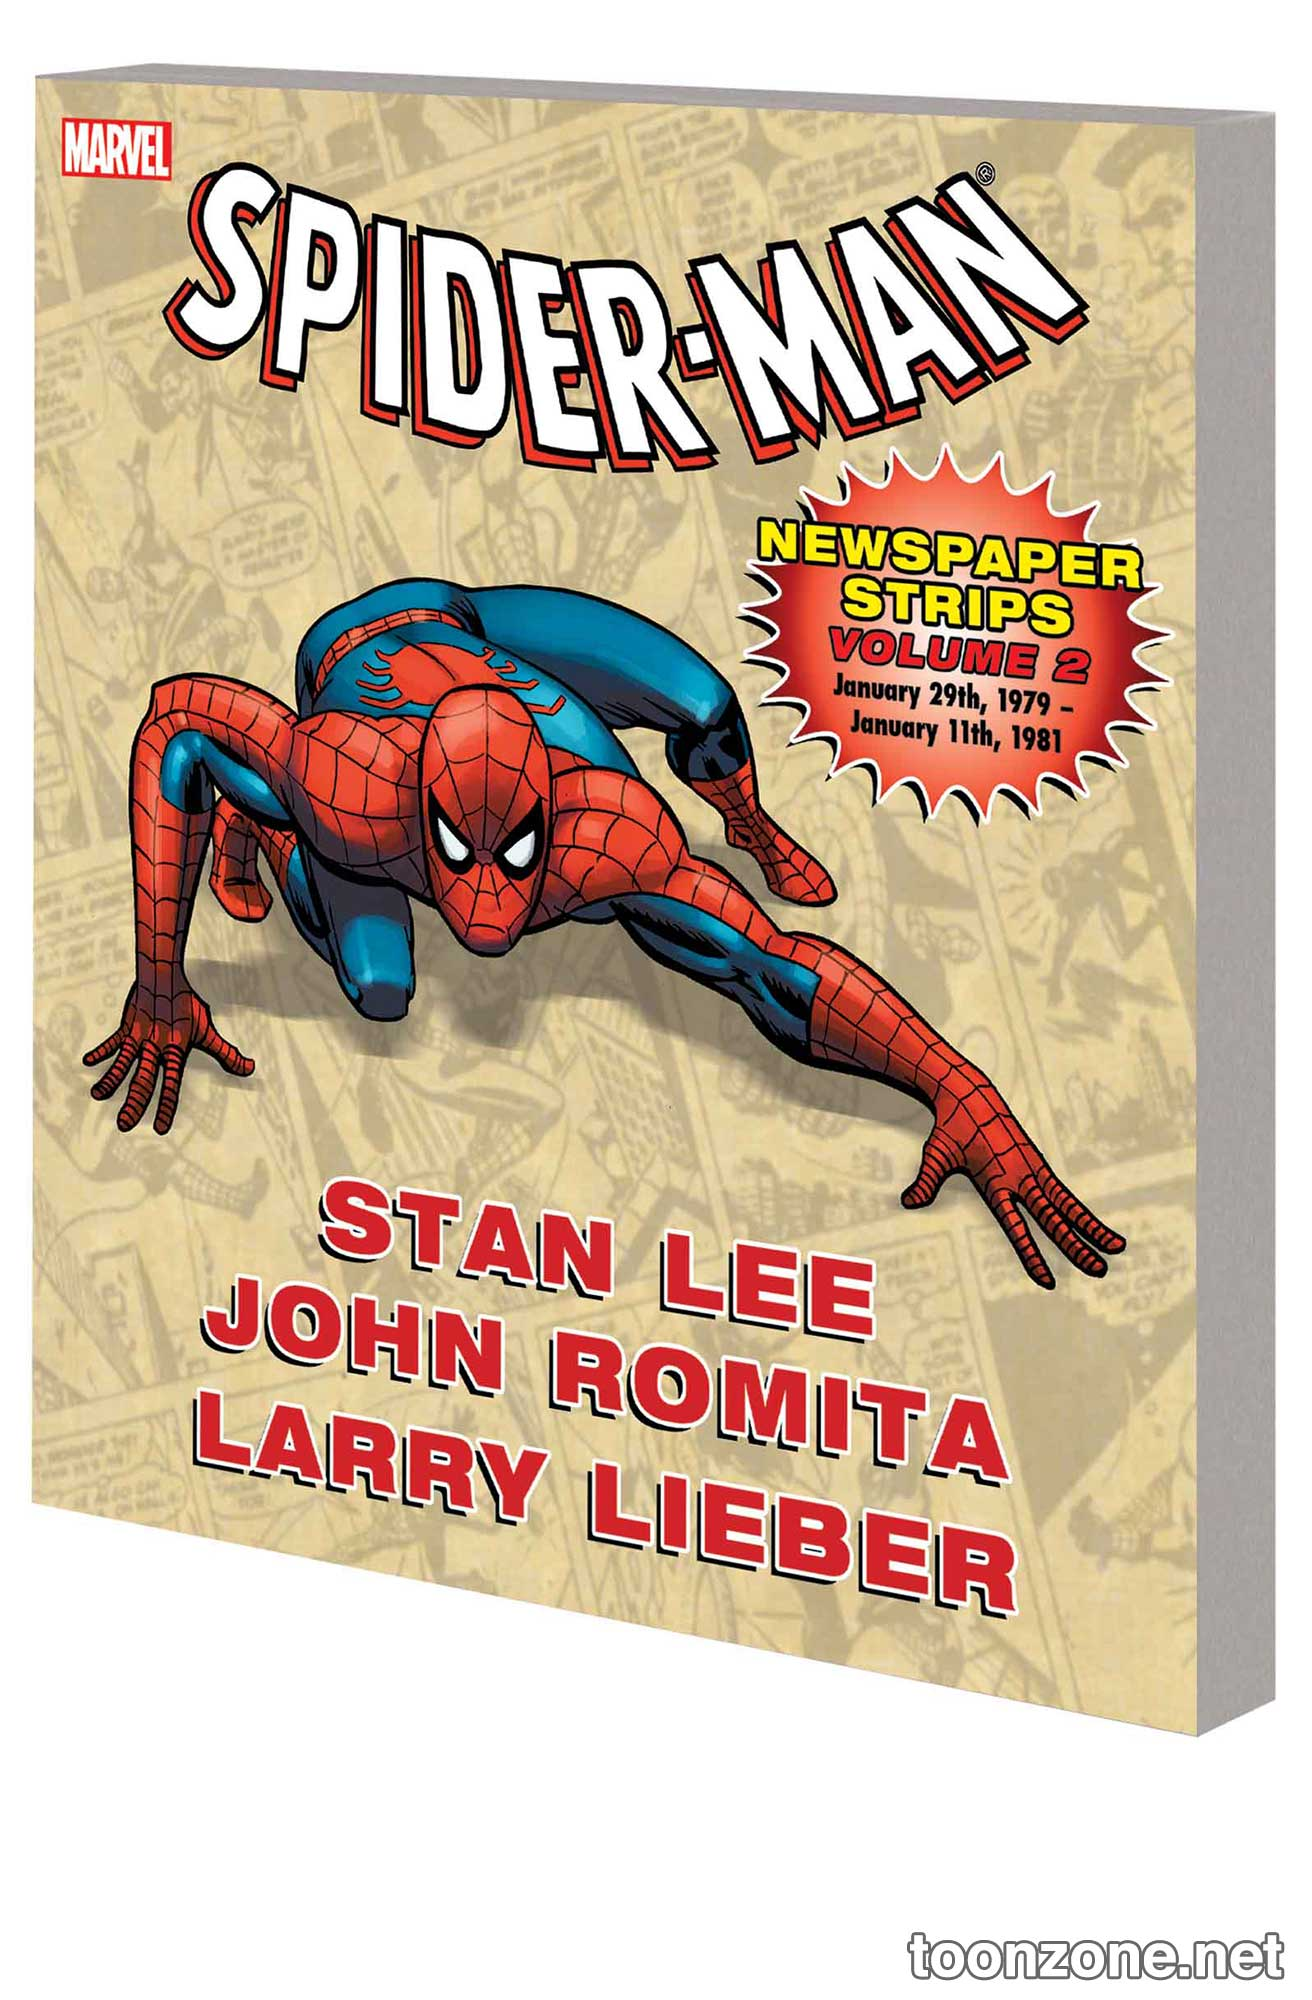 SPIDER-MAN NEWSPAPER STRIPS VOL. 2 TPB